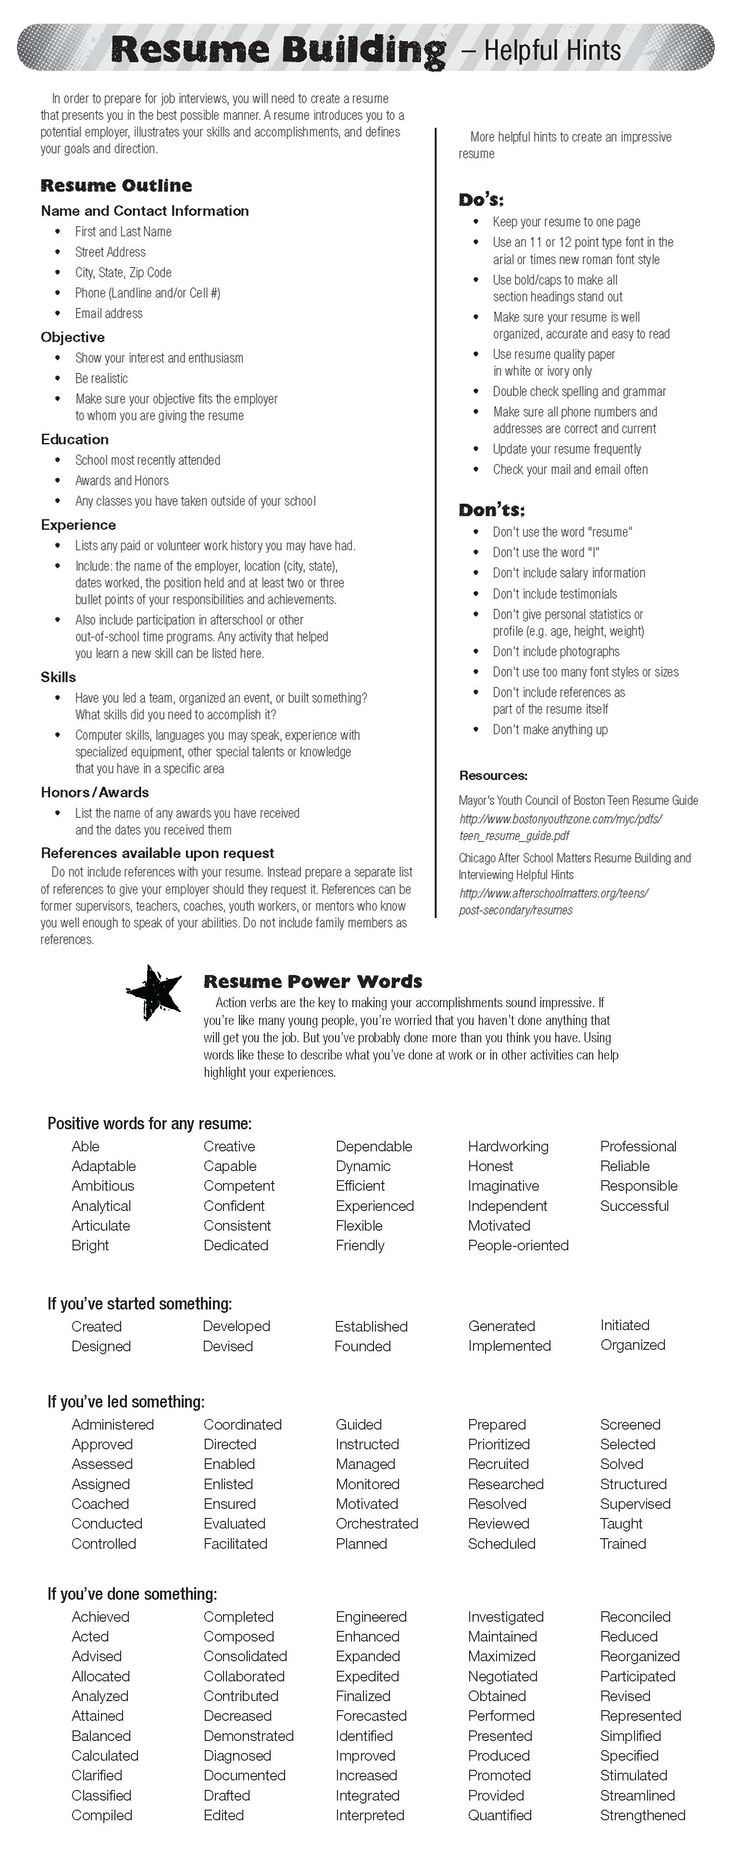 Opposenewapstandardsus  Ravishing  Ideas About Resume On Pinterest  Cv Format Resume Cv And  With Licious  Ideas About Resume On Pinterest  Cv Format Resume Cv And Resume Templates With Delectable Resume Writing Services Online Also Resume Rabbit Cost In Addition Compliance Manager Resume And Automation Engineer Resume As Well As Template Resumes Additionally Interactive Resume Builder From Pinterestcom With Opposenewapstandardsus  Licious  Ideas About Resume On Pinterest  Cv Format Resume Cv And  With Delectable  Ideas About Resume On Pinterest  Cv Format Resume Cv And Resume Templates And Ravishing Resume Writing Services Online Also Resume Rabbit Cost In Addition Compliance Manager Resume From Pinterestcom